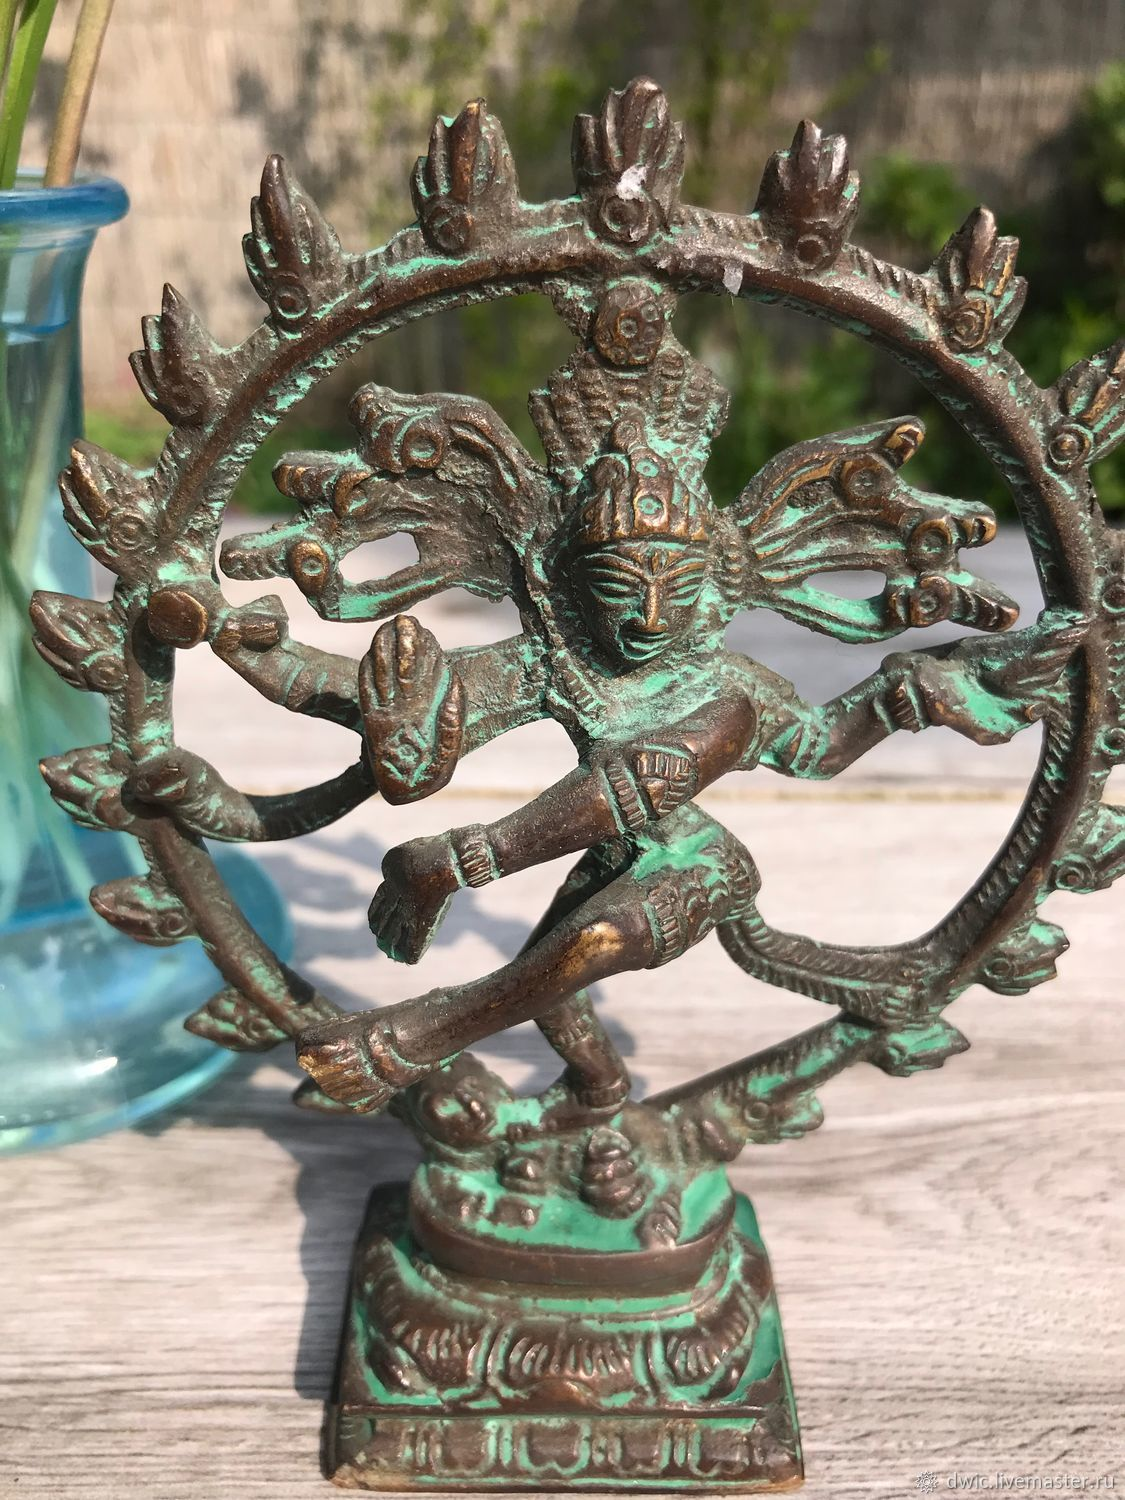 The figure of the Buddha 'Dancing Shiva', bronze, handmade, India, Vintage interior, Arnhem,  Фото №1